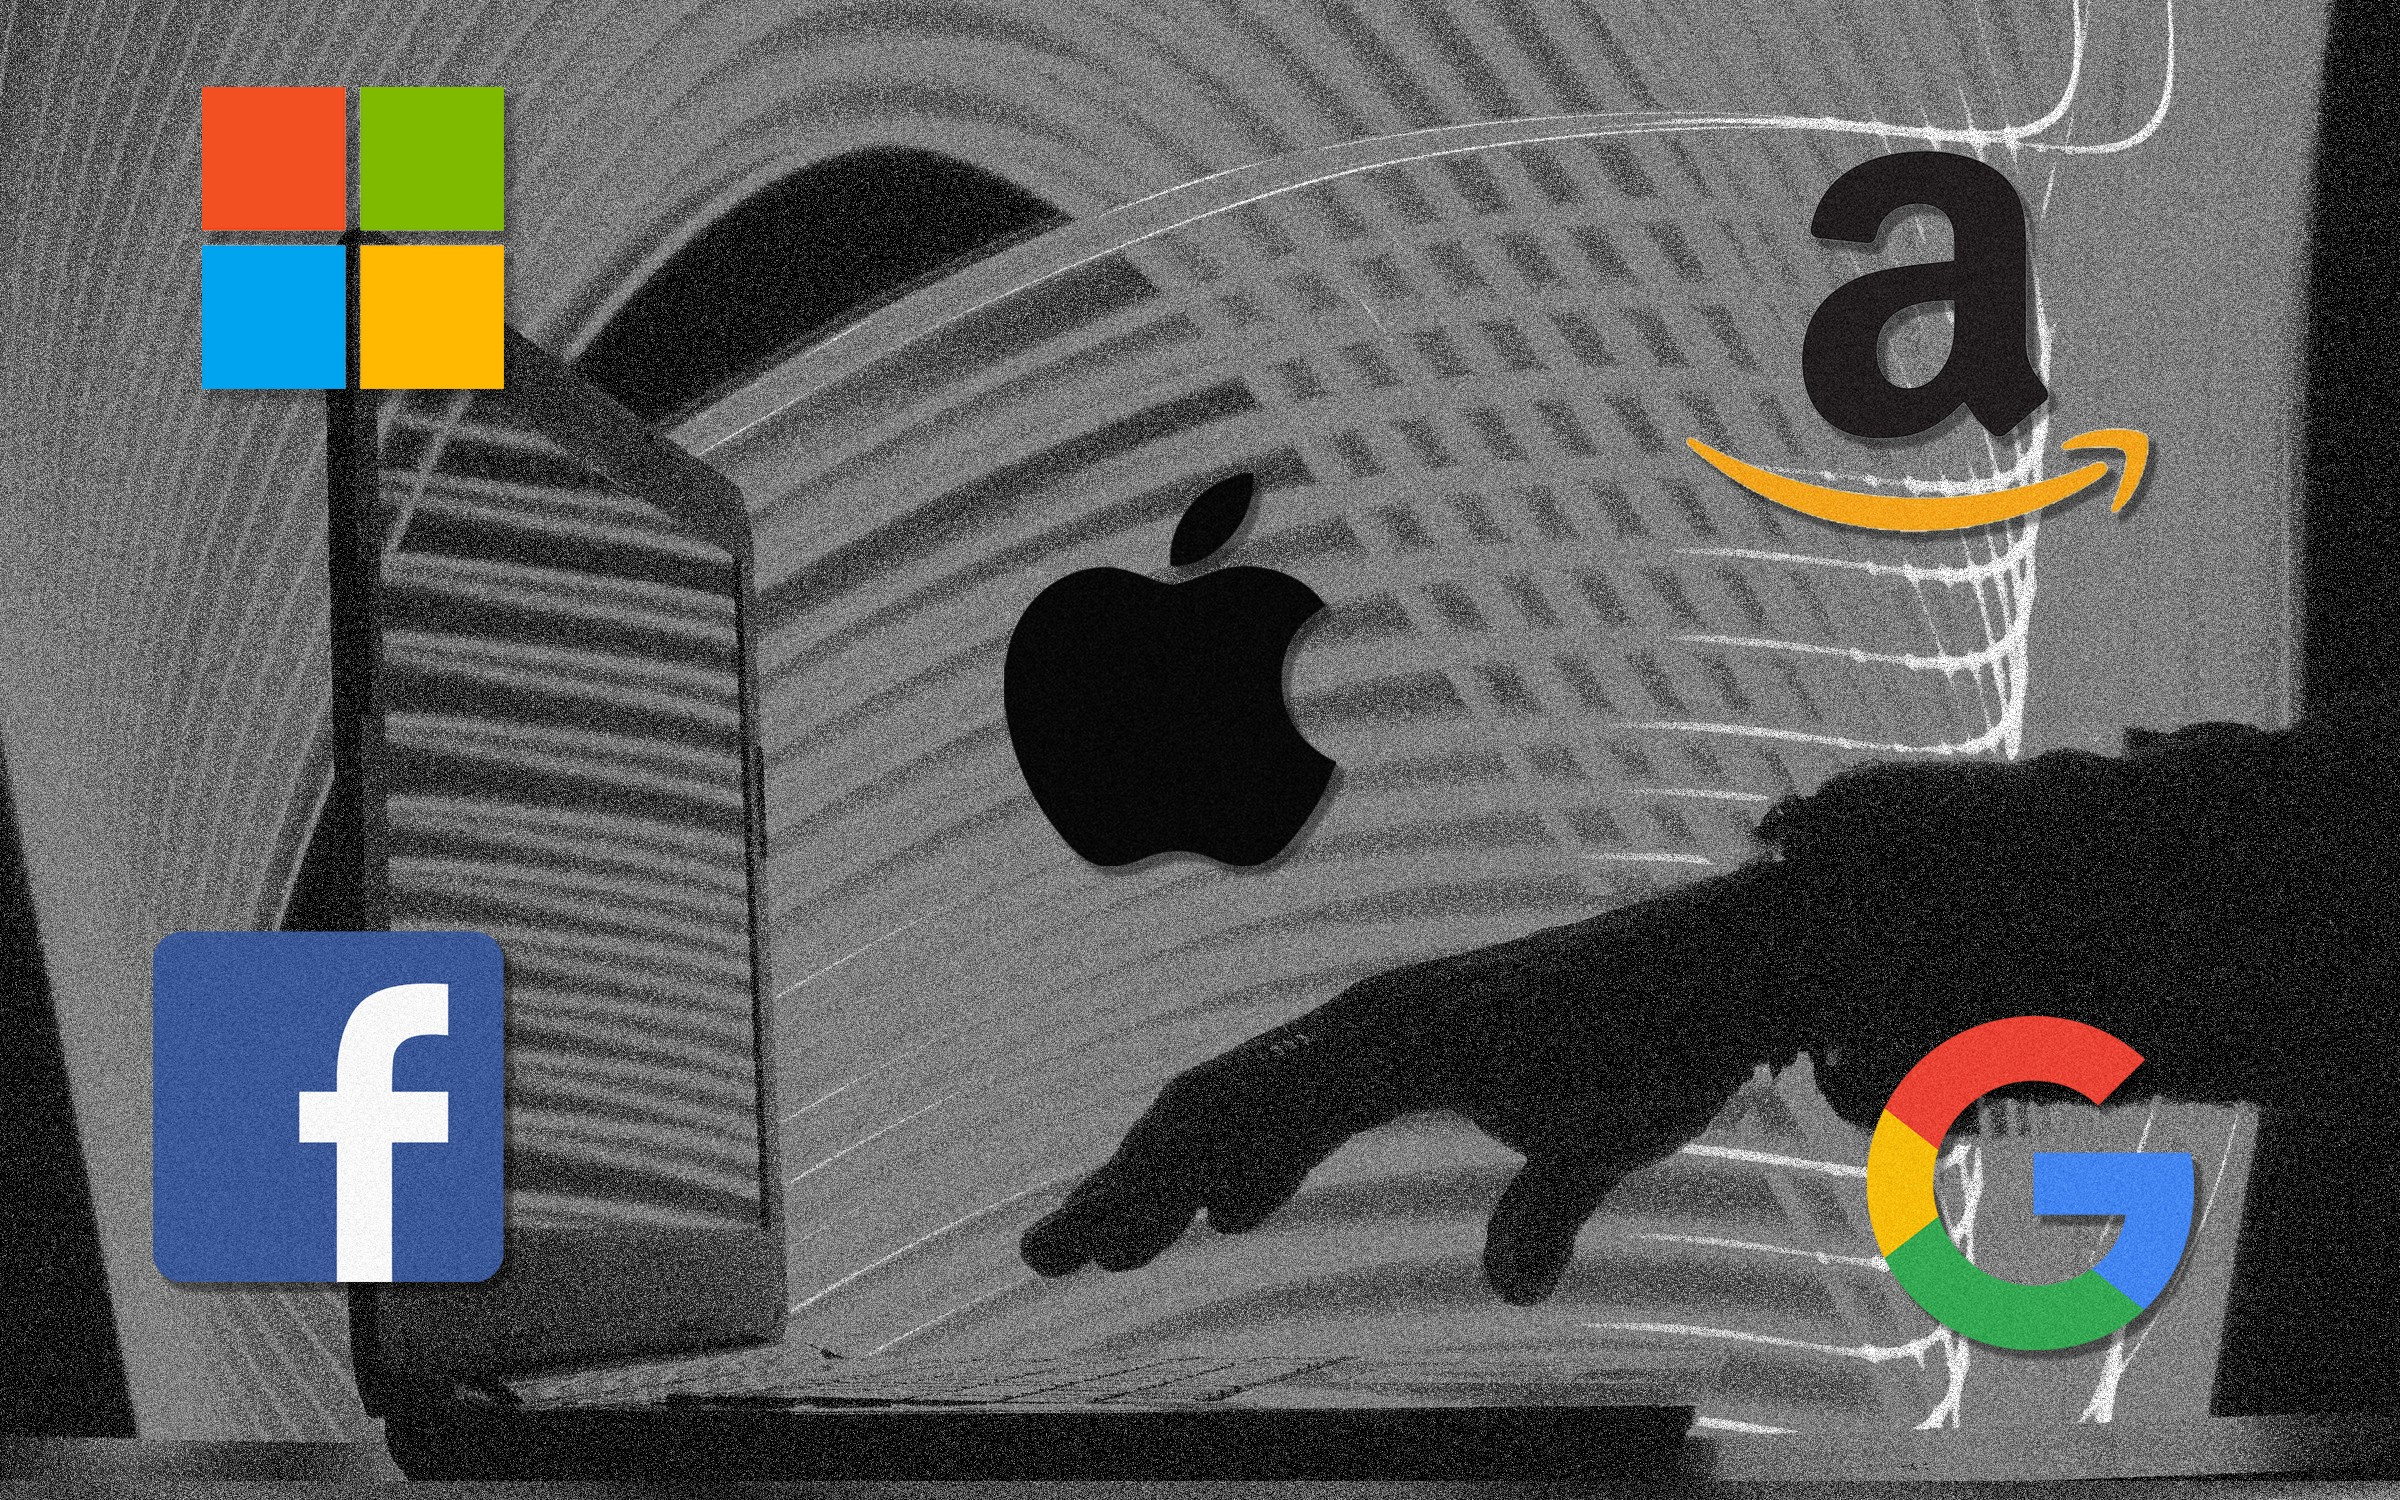 Apple, Microsoft, Amazon, Facebook, and Google logos superimposed over another image of a hand reaching for an open laptop.